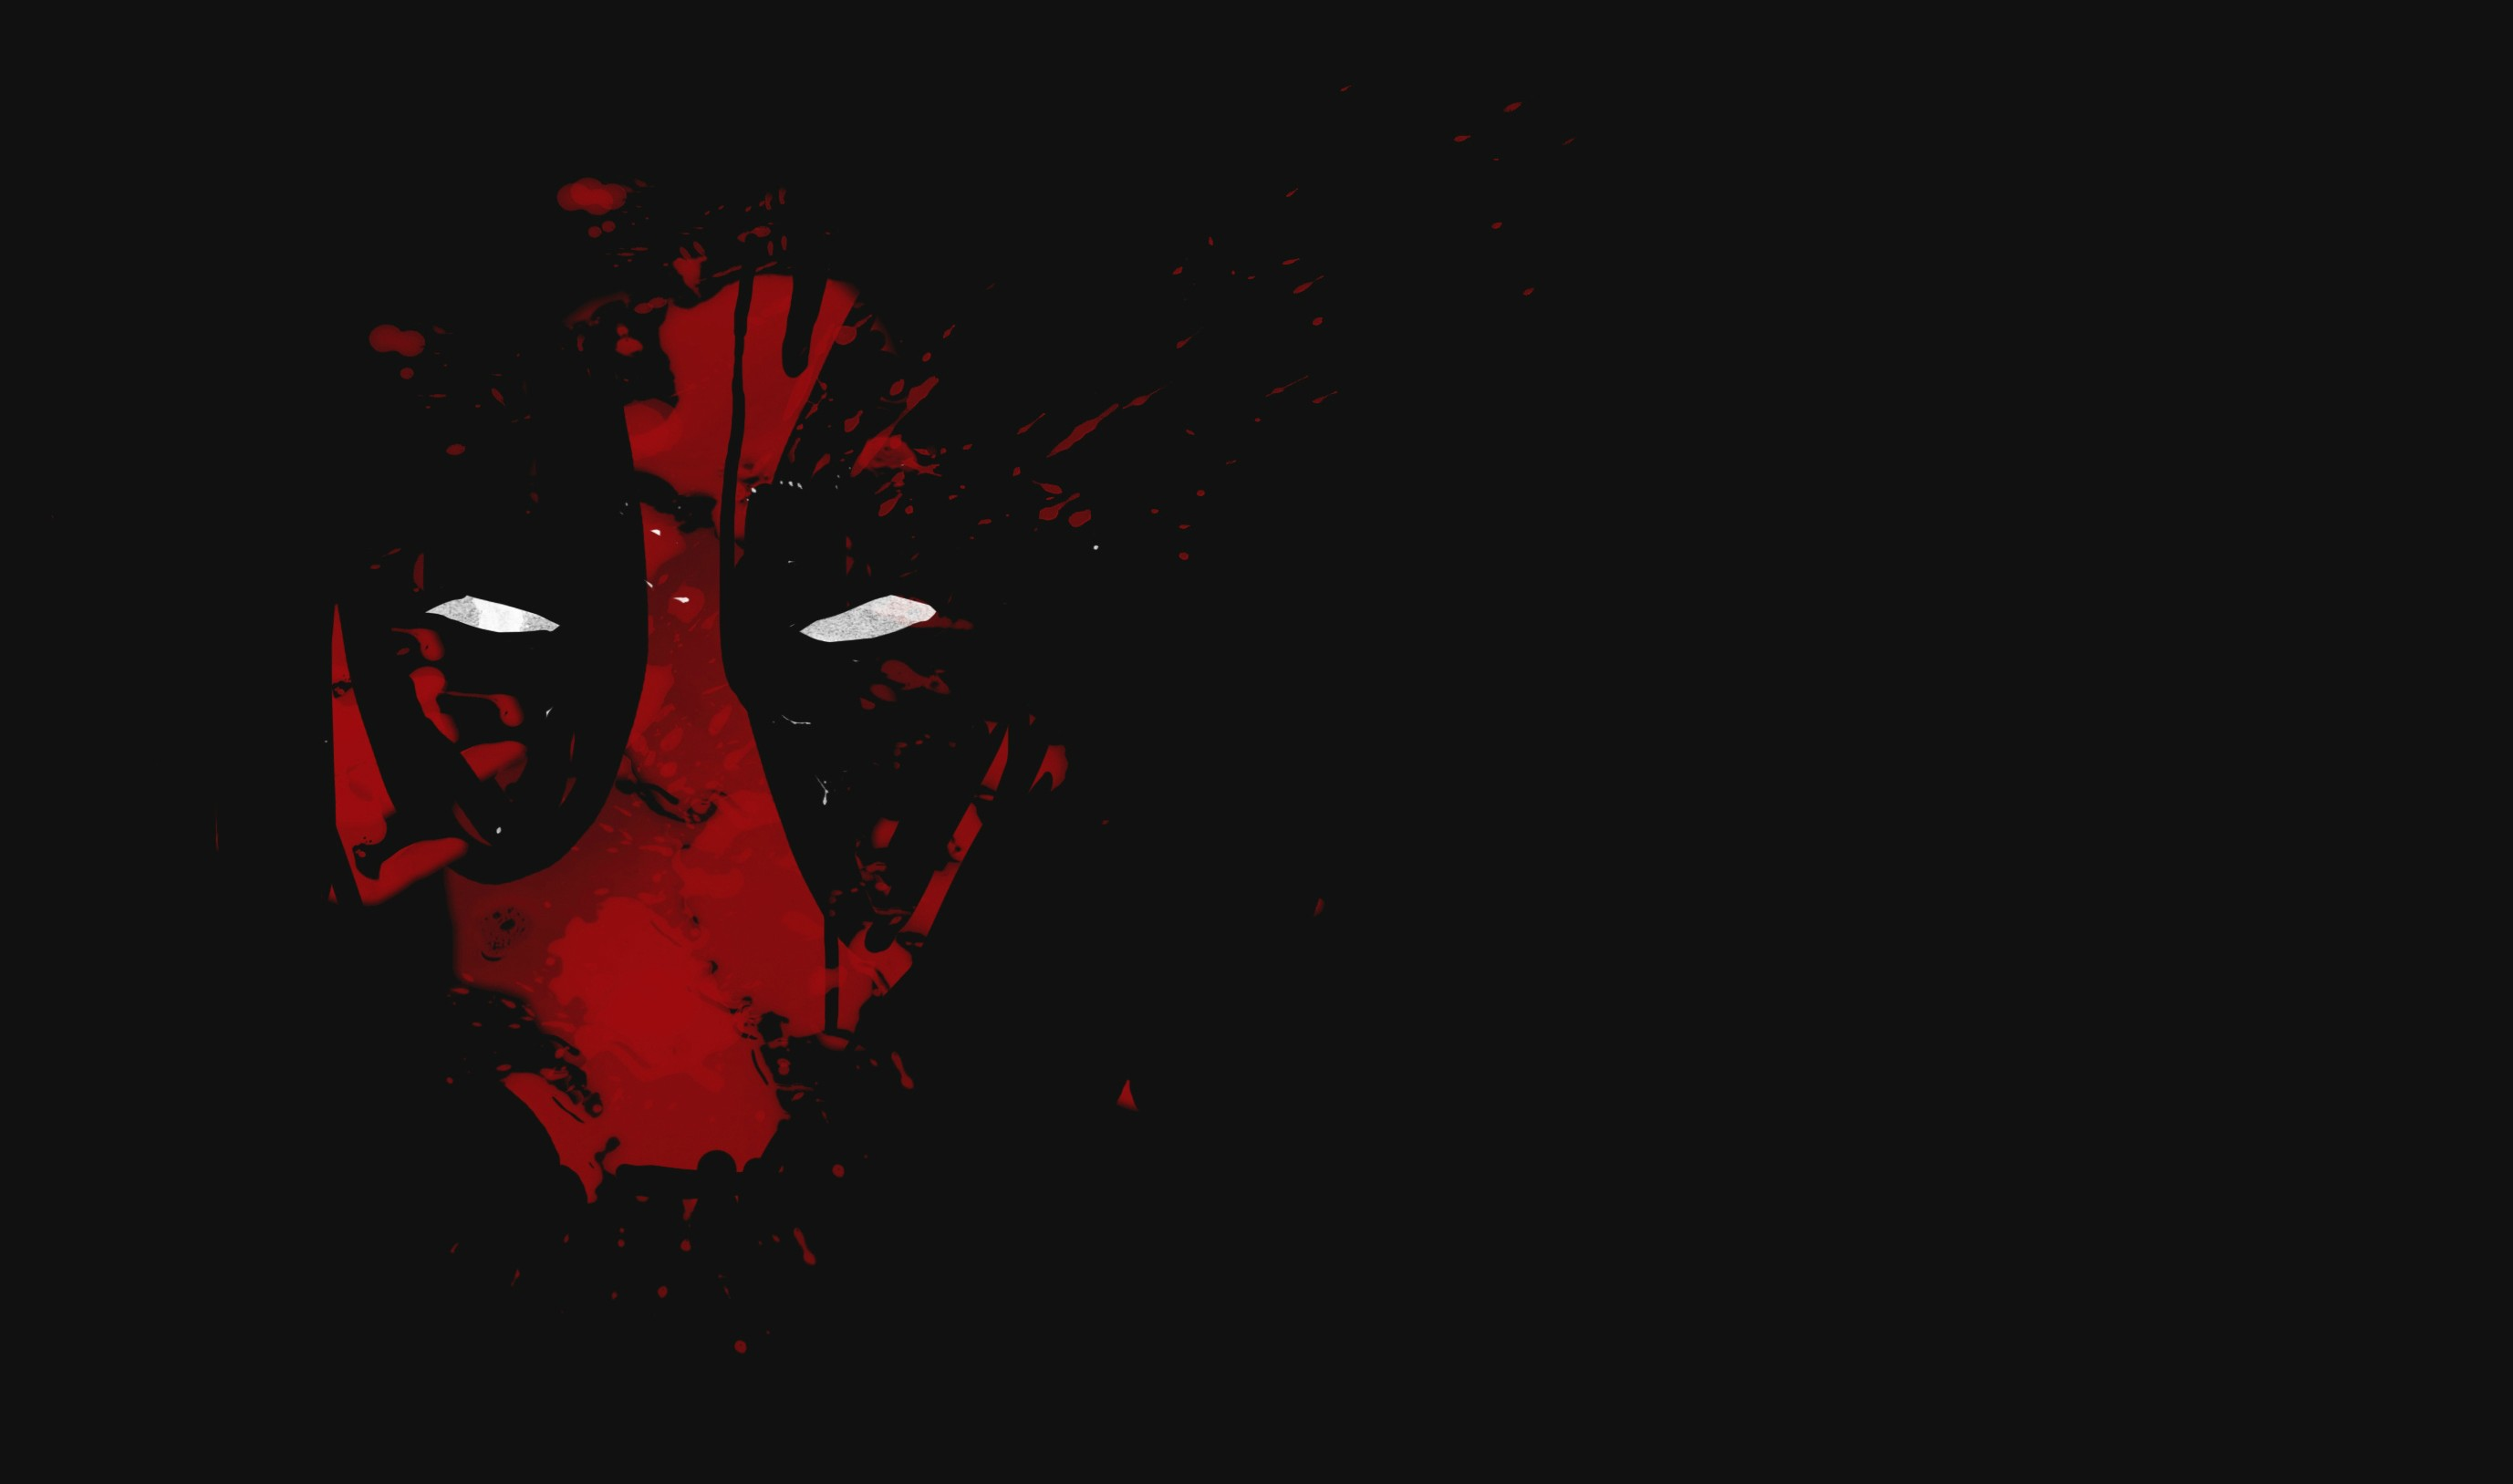 deadpool wallpaper hd 1080p - photo #26